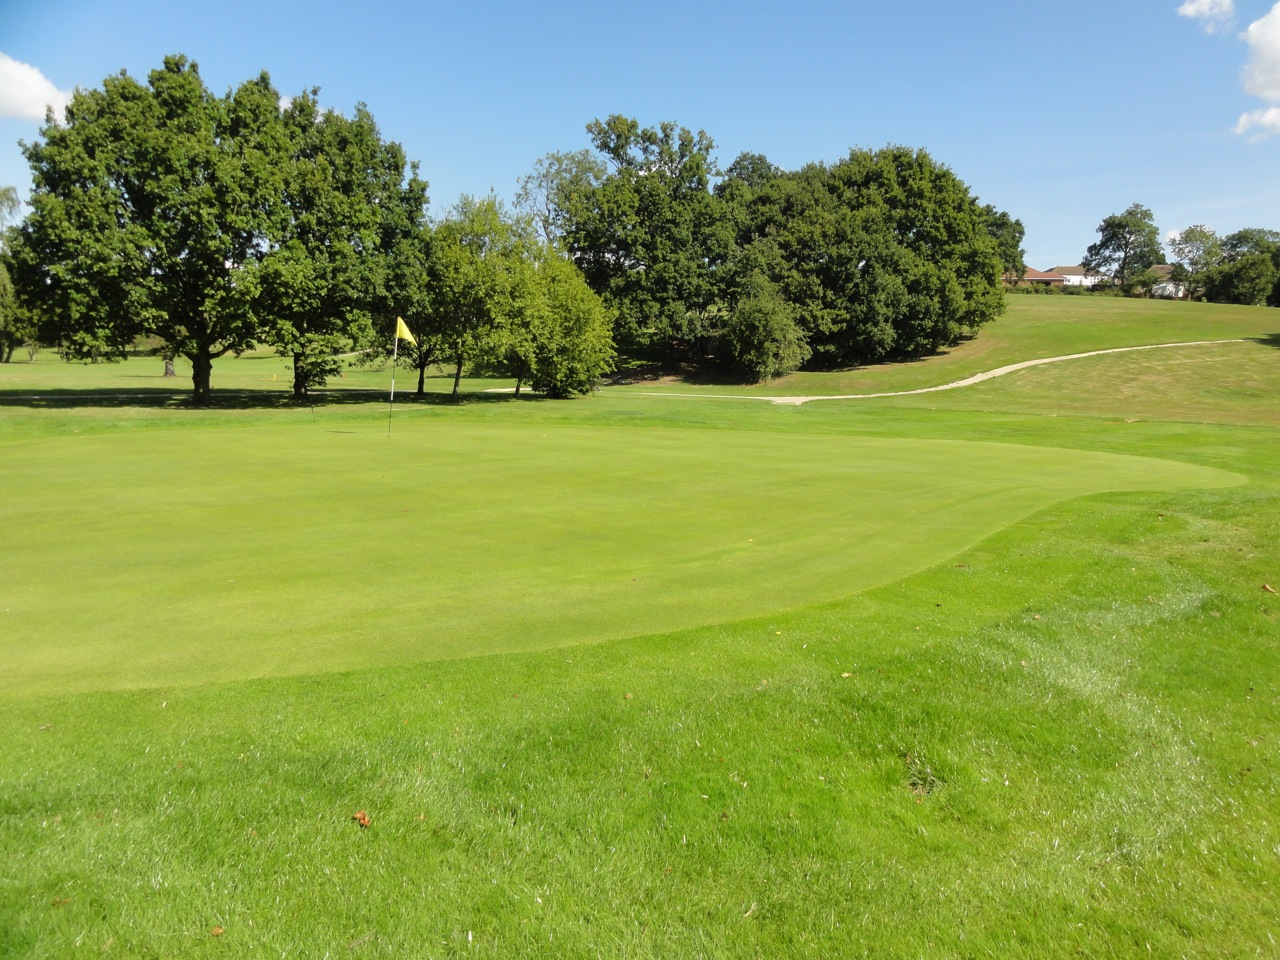 The 10th green is looking very healthy following drainage installation